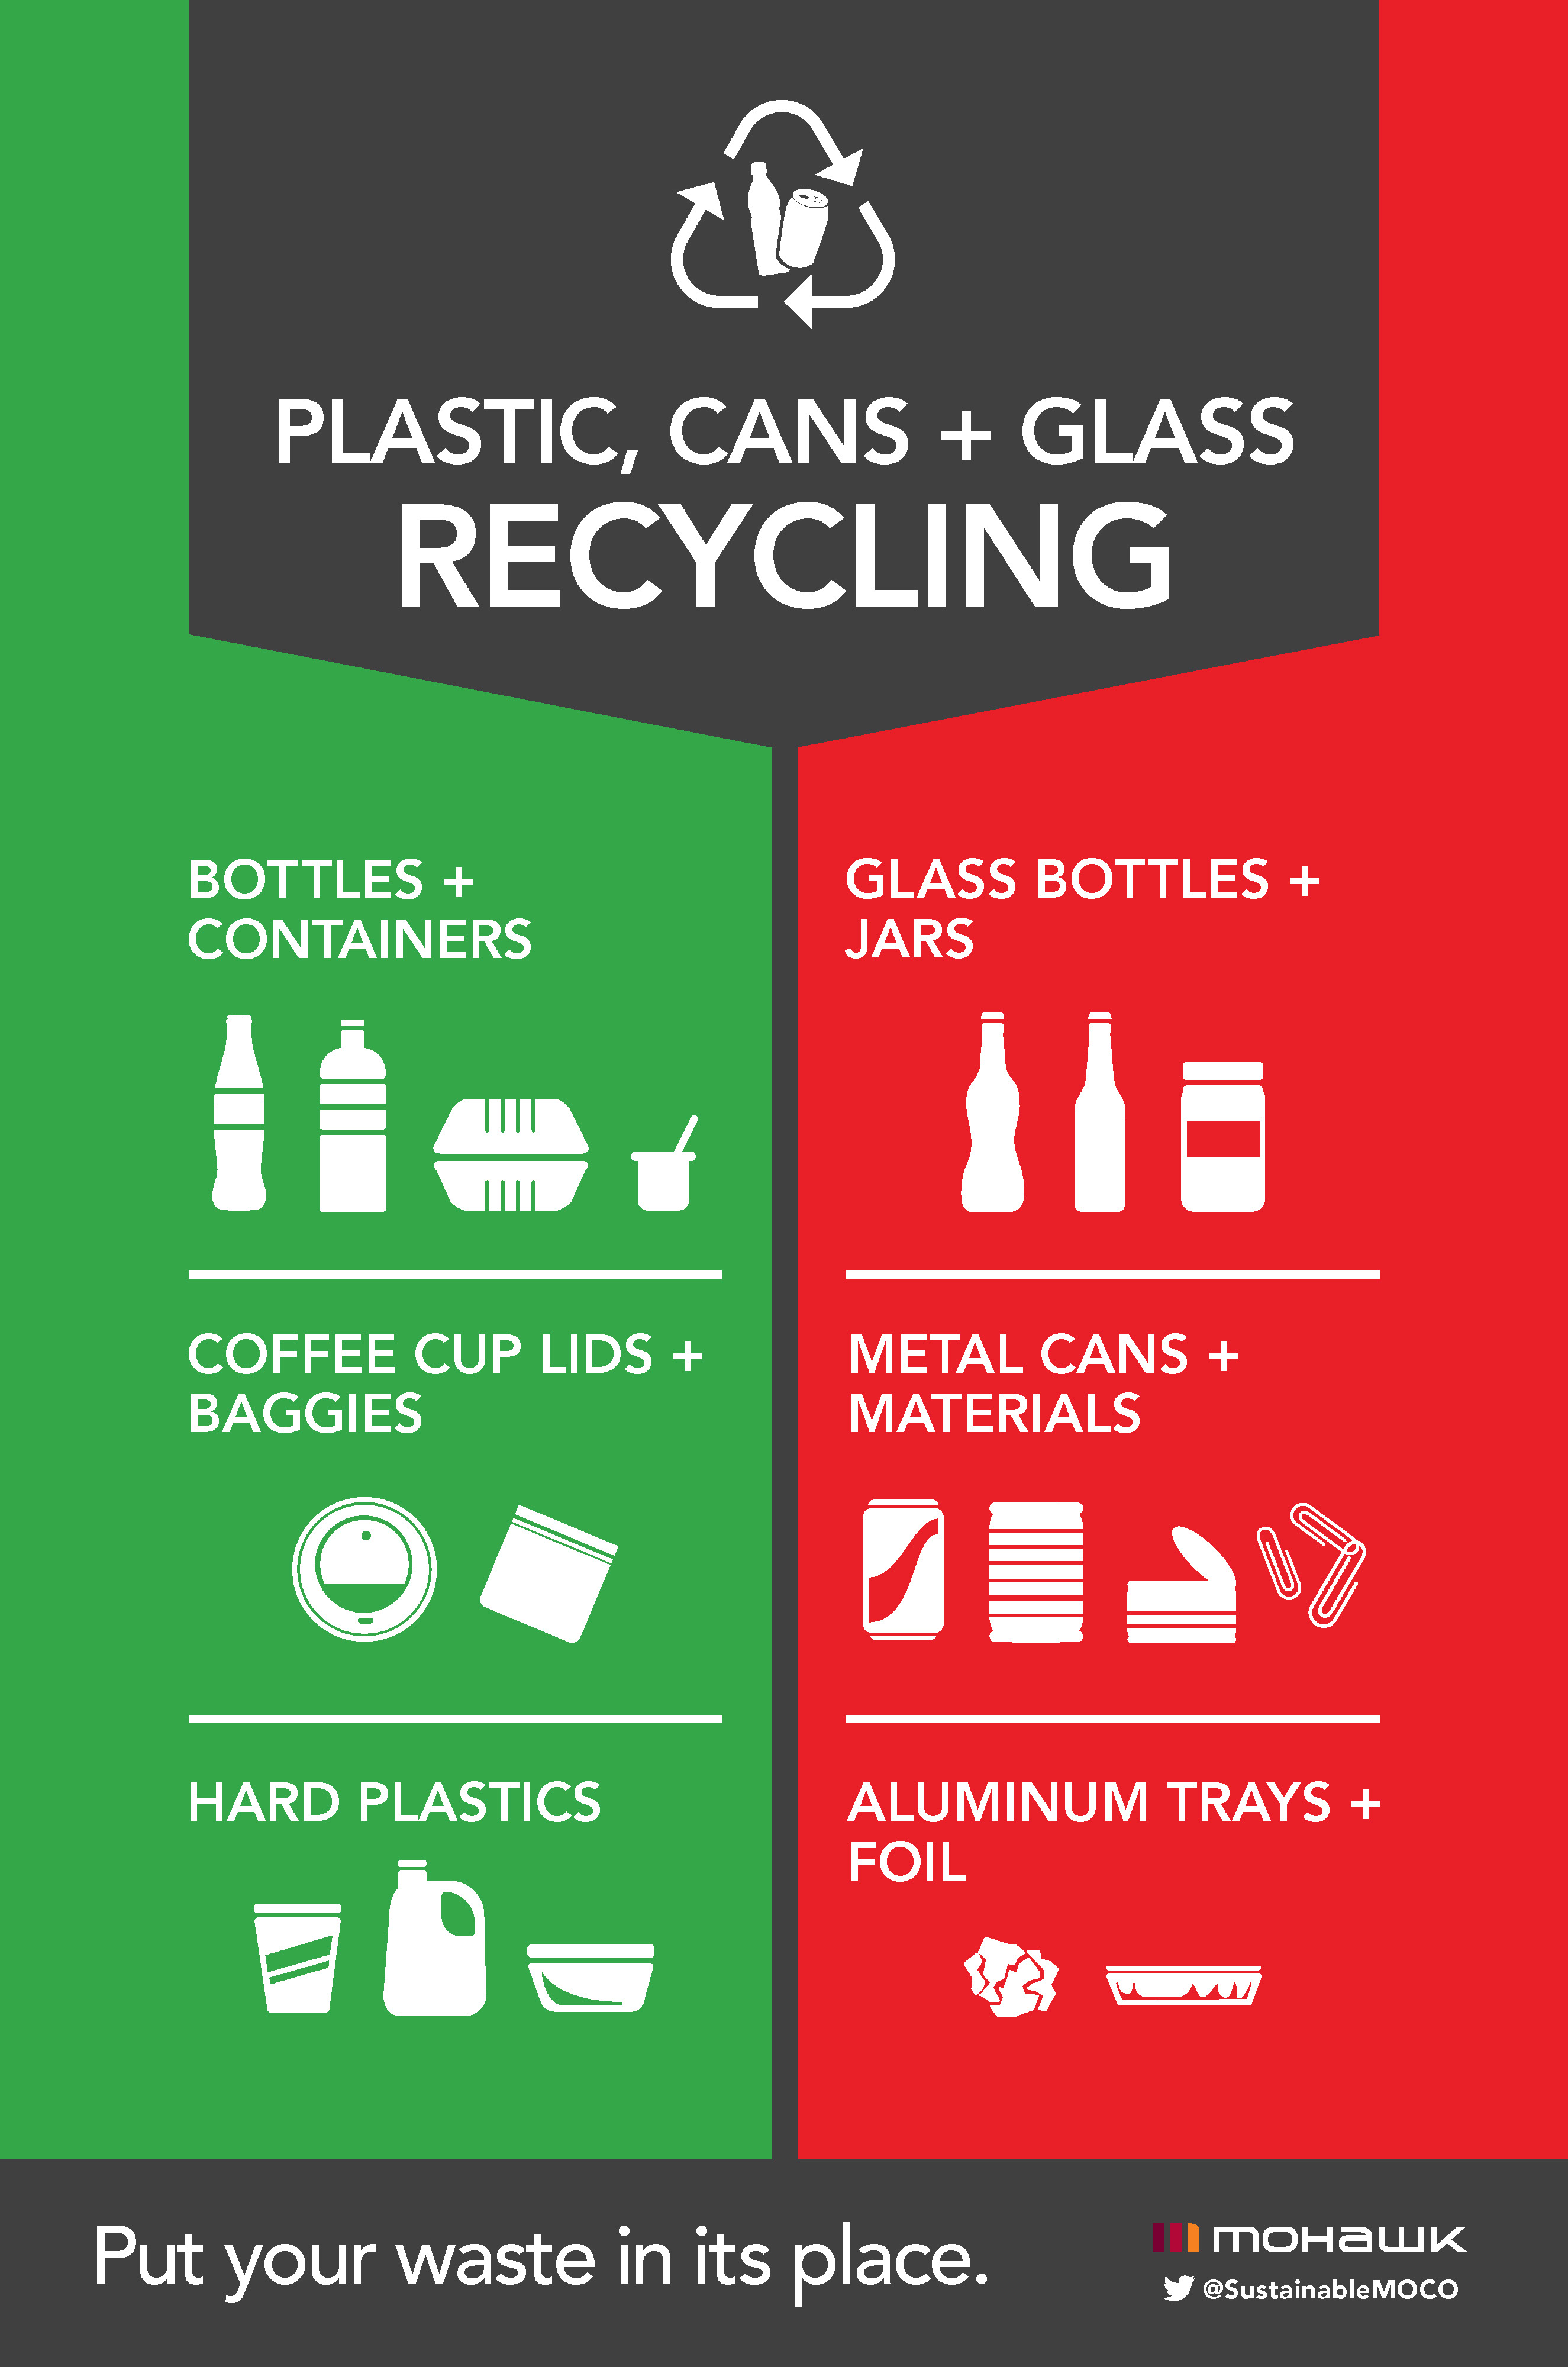 Mohawk College Sustainability Poster Plastic, Cans + Glass Recycling Put your waste in its place